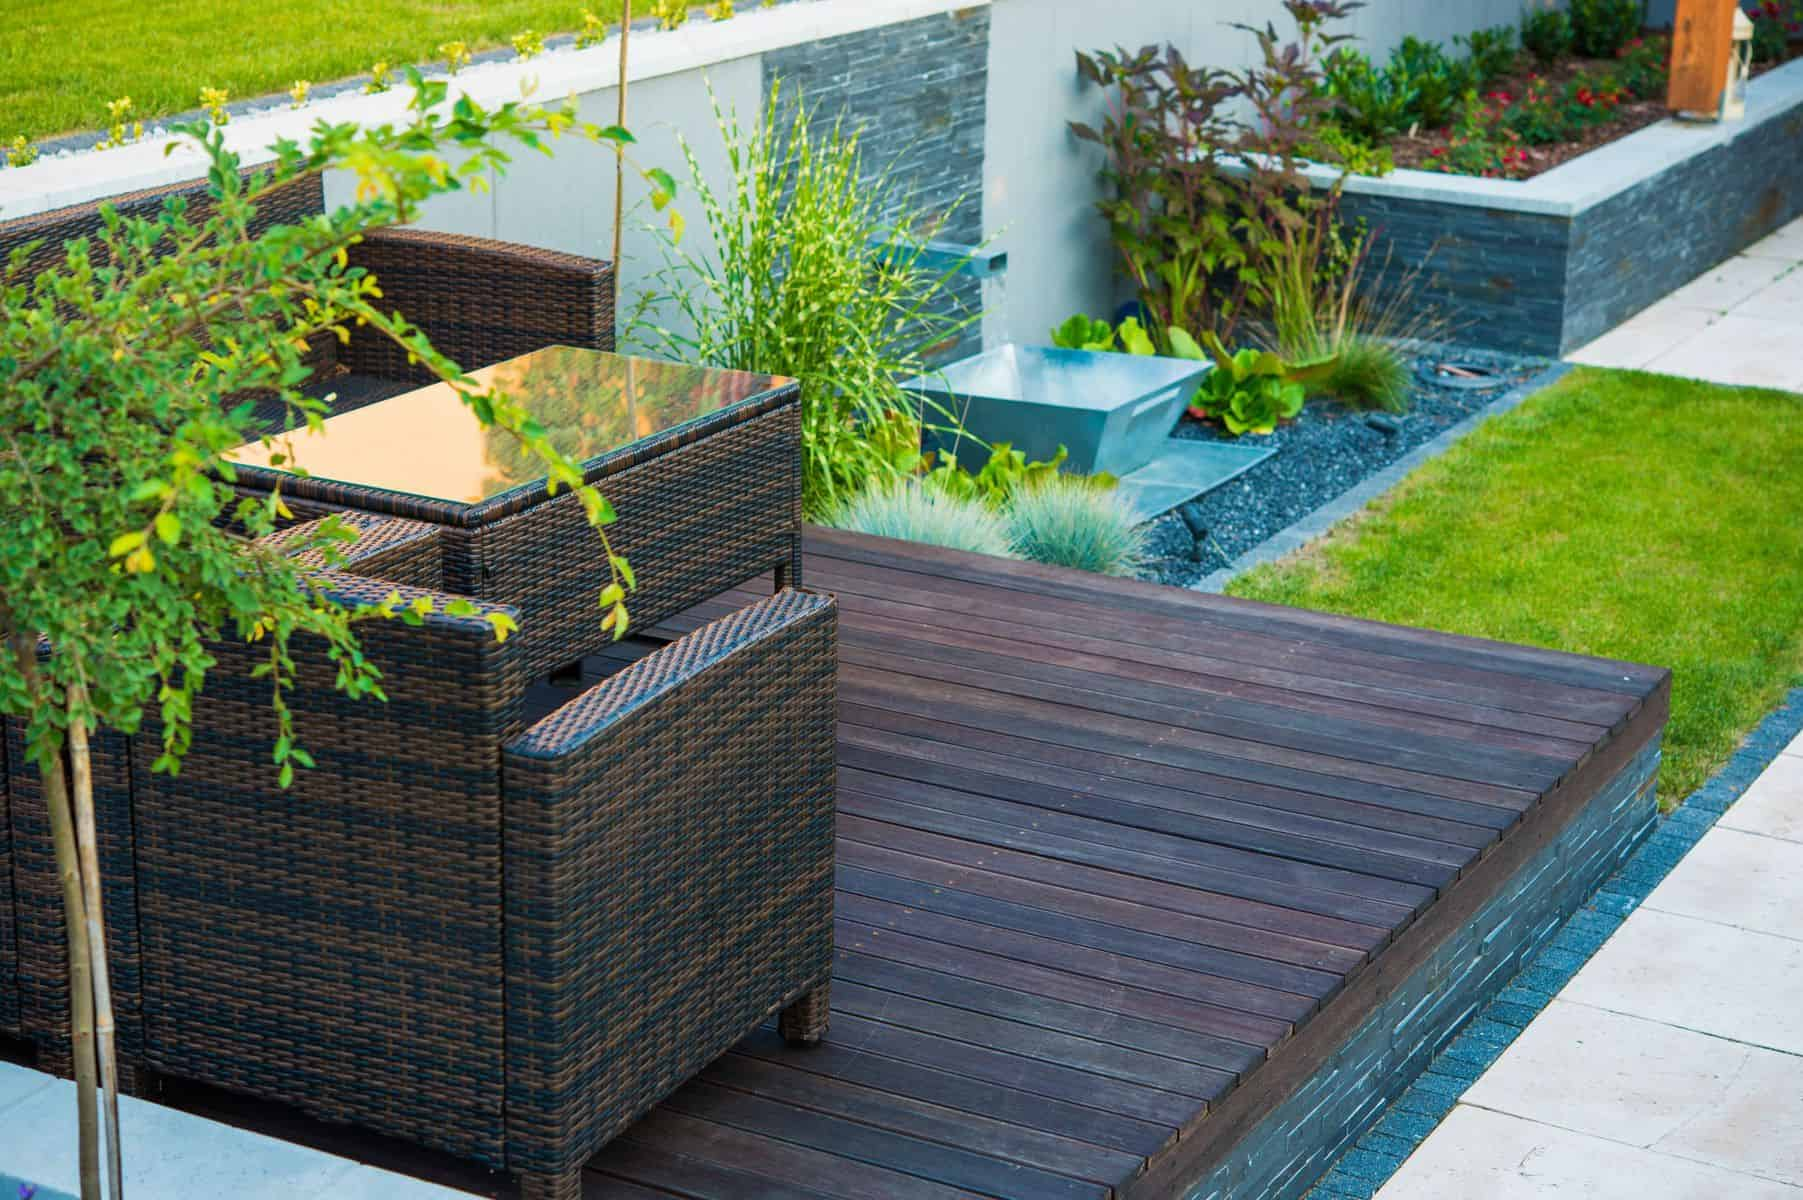 Decking/patio area - best use of garden spaces